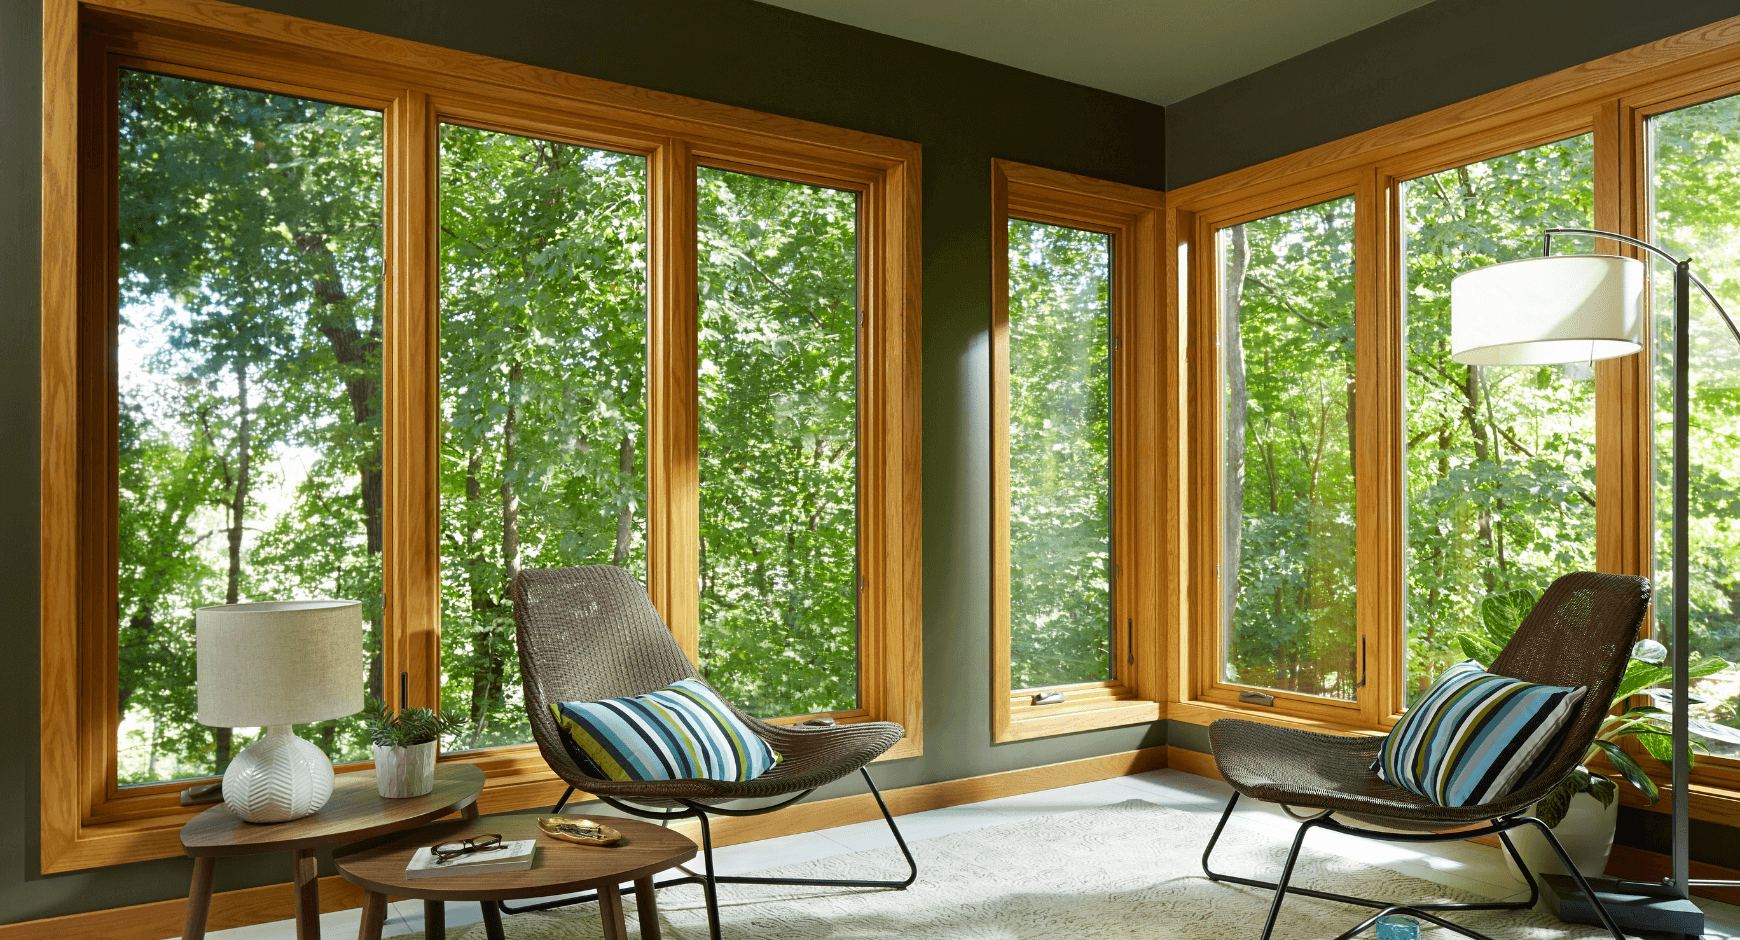 Image of an energy efficient home with large picture windows looking out into the woods